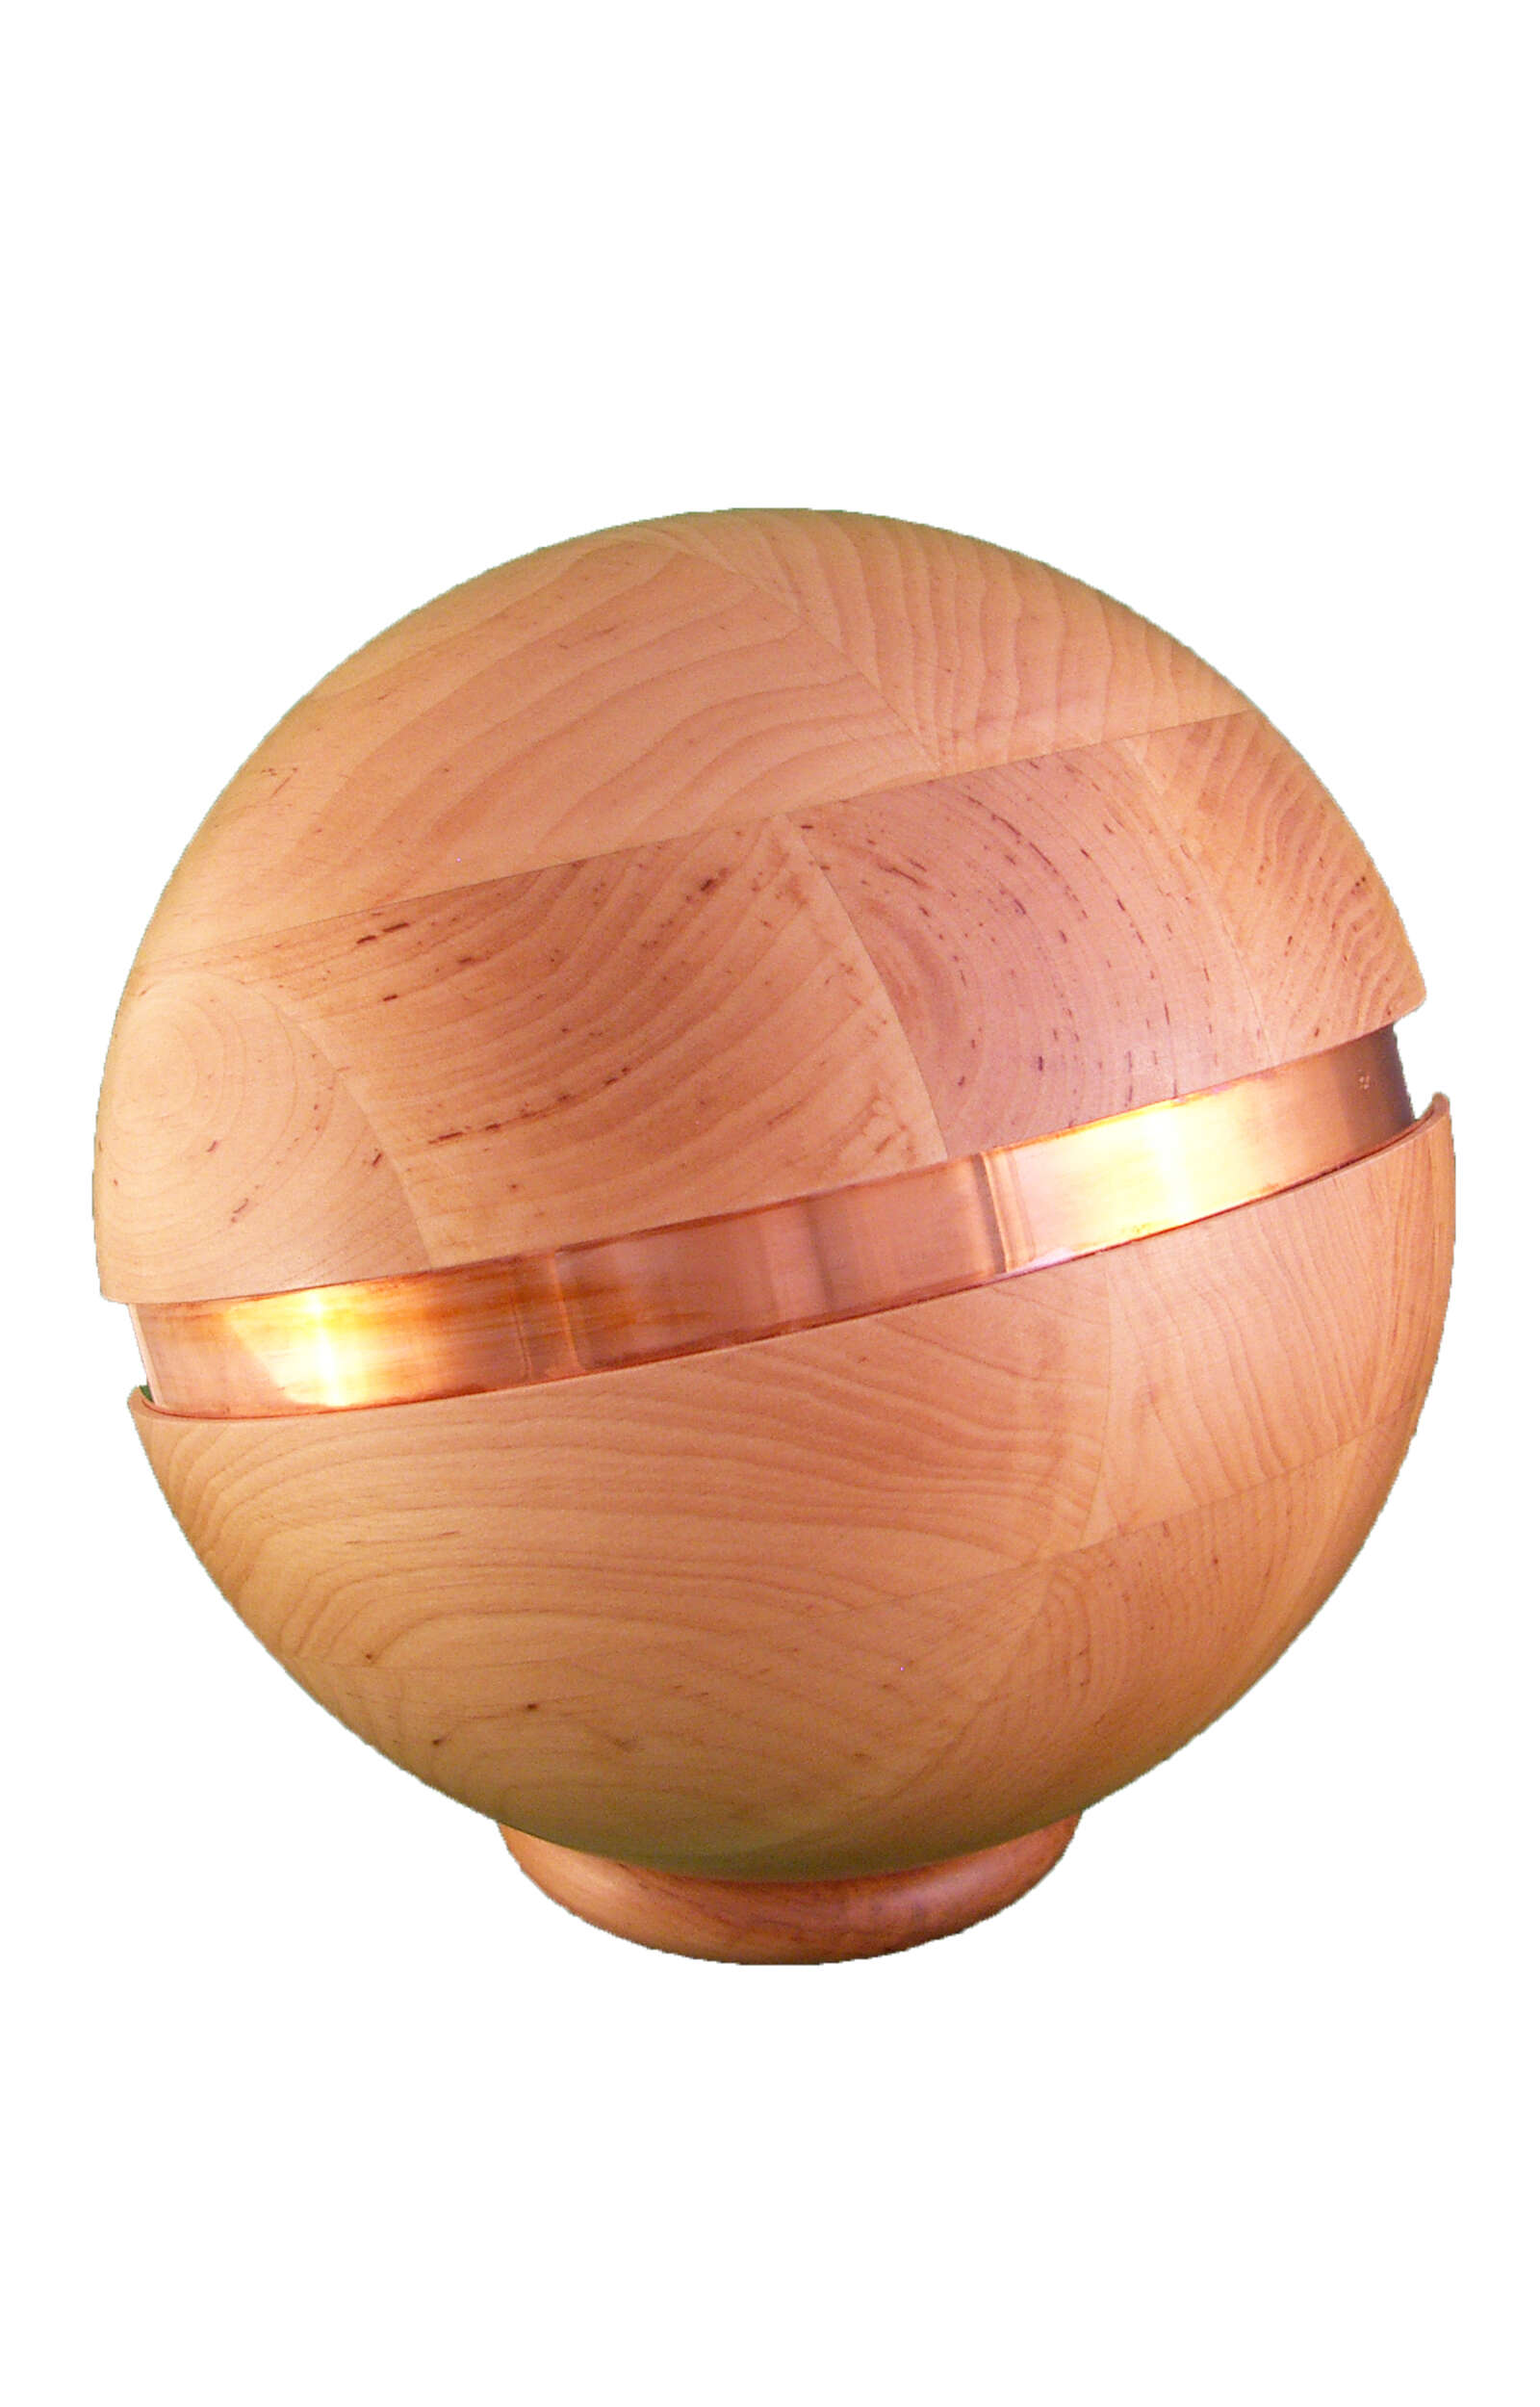 en HB3102 ball shape funeral urn wooden urns with metal decoration